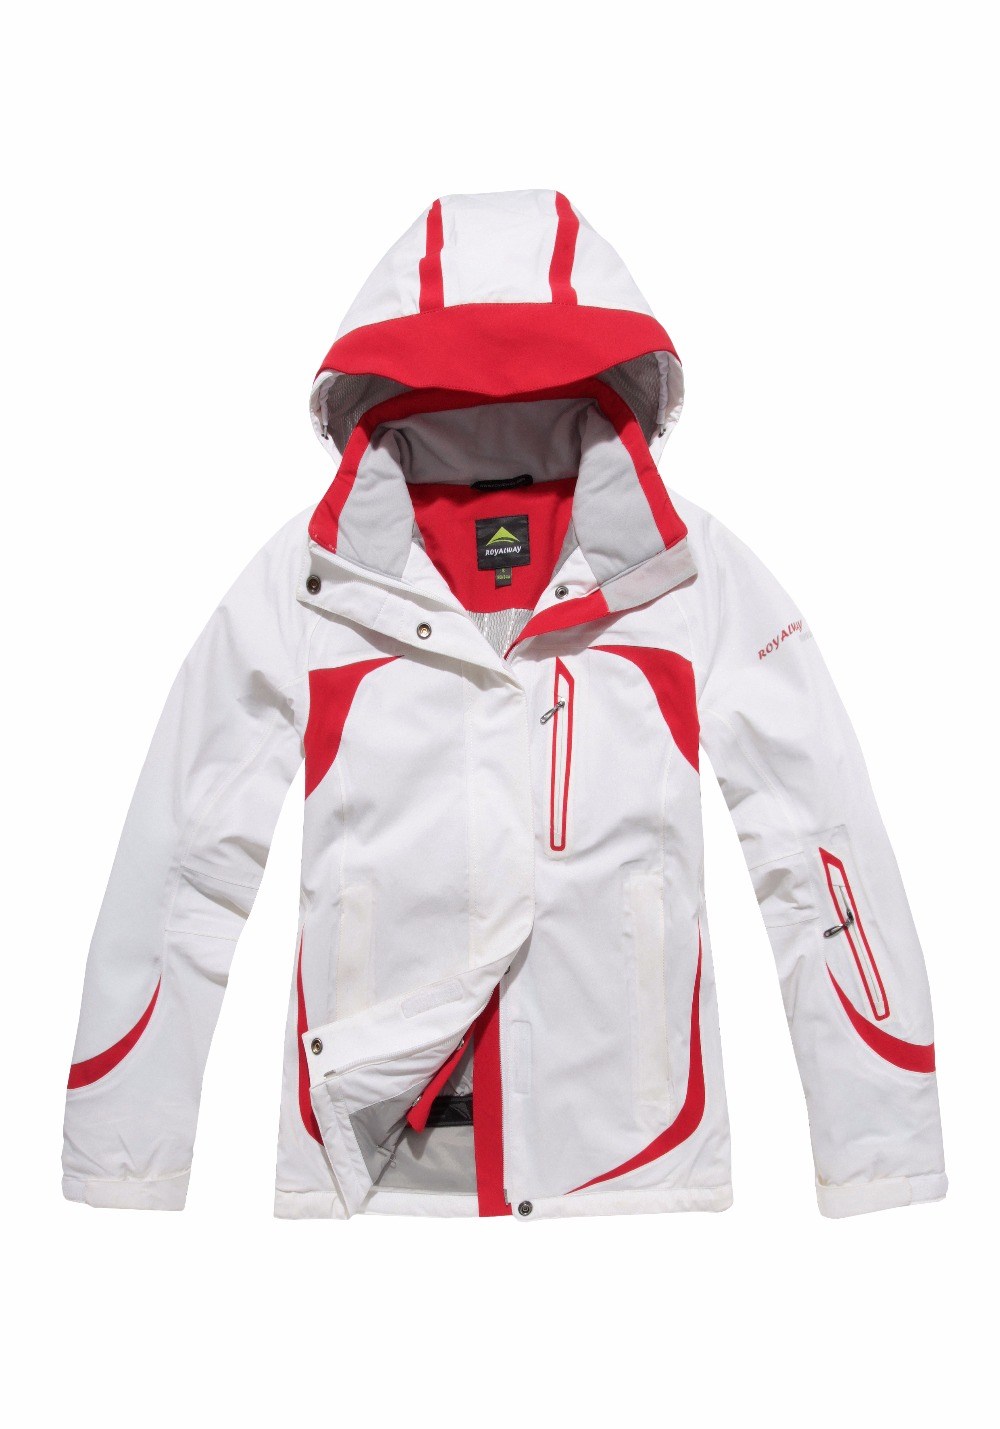 ROYALWAY New Arrival Women Ski Jacket Outdoor Jacket Windproof Breathable Waterproof Snowboard Jacket Comfortable #RFSL4495G ...